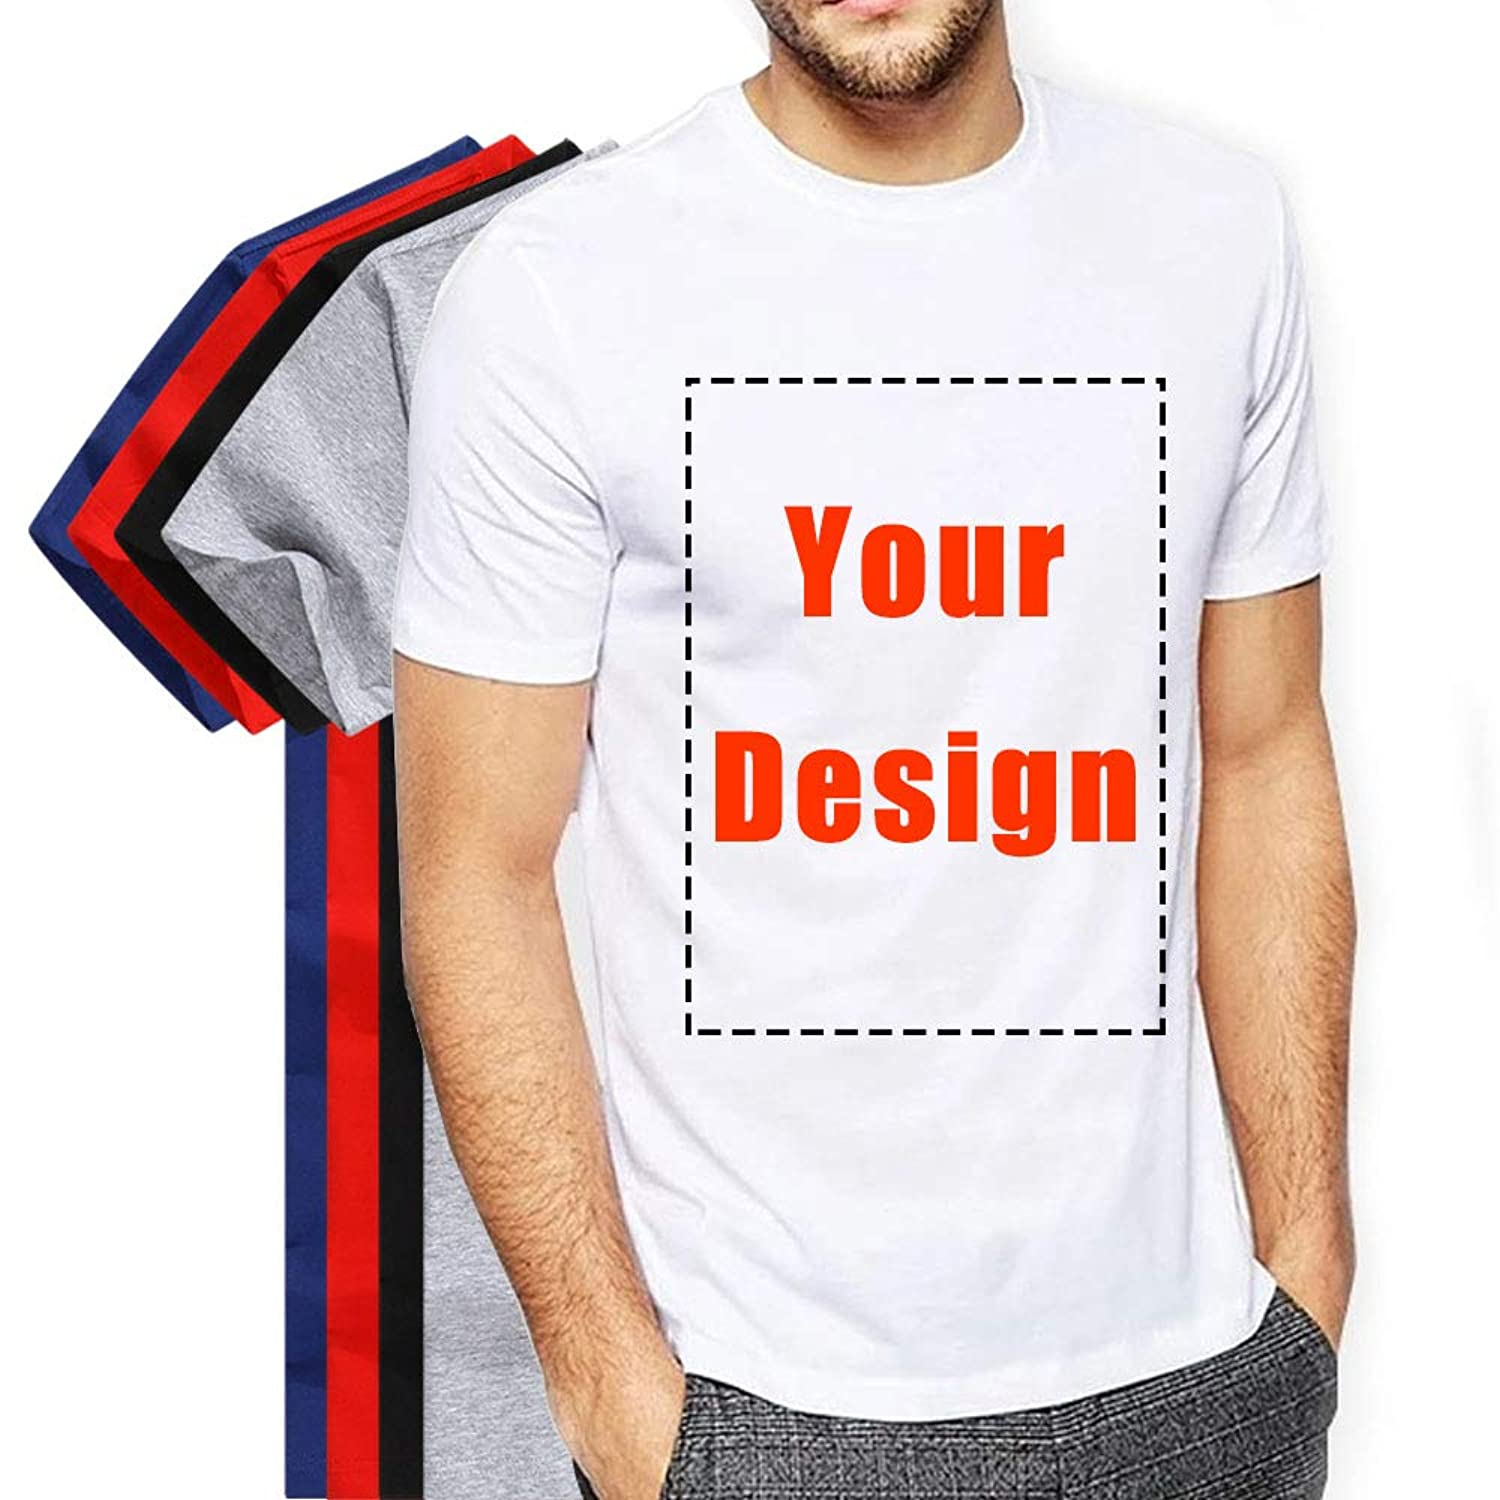 c3791bfd1 Custom Design Approach 1. Choose your size and color then click